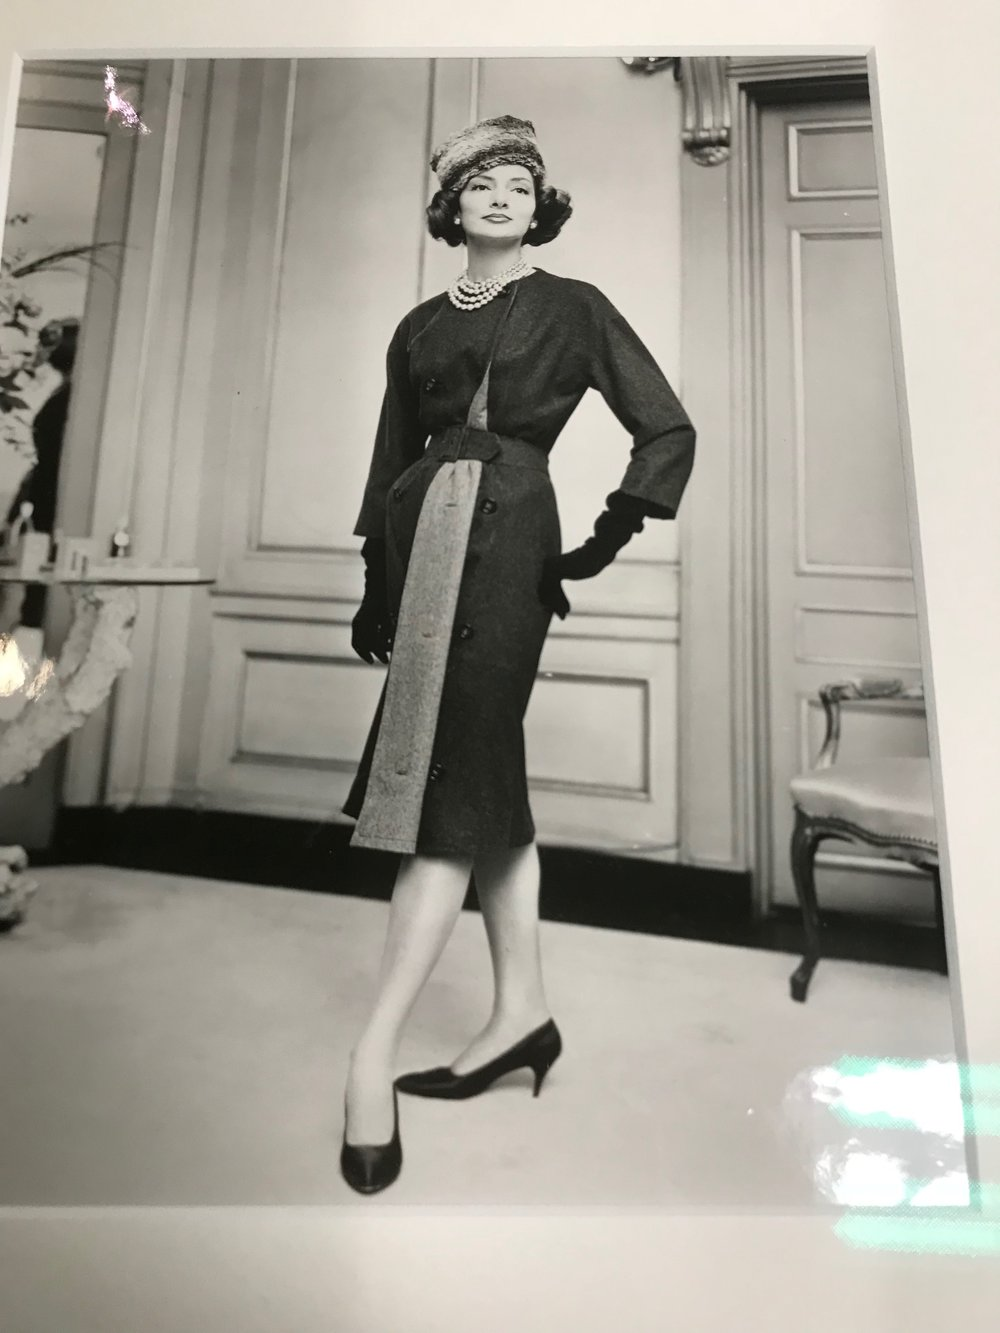 Trish Lonergan's aunt, Adele, a model whose designer clothing was the original inspiration for Esther's.